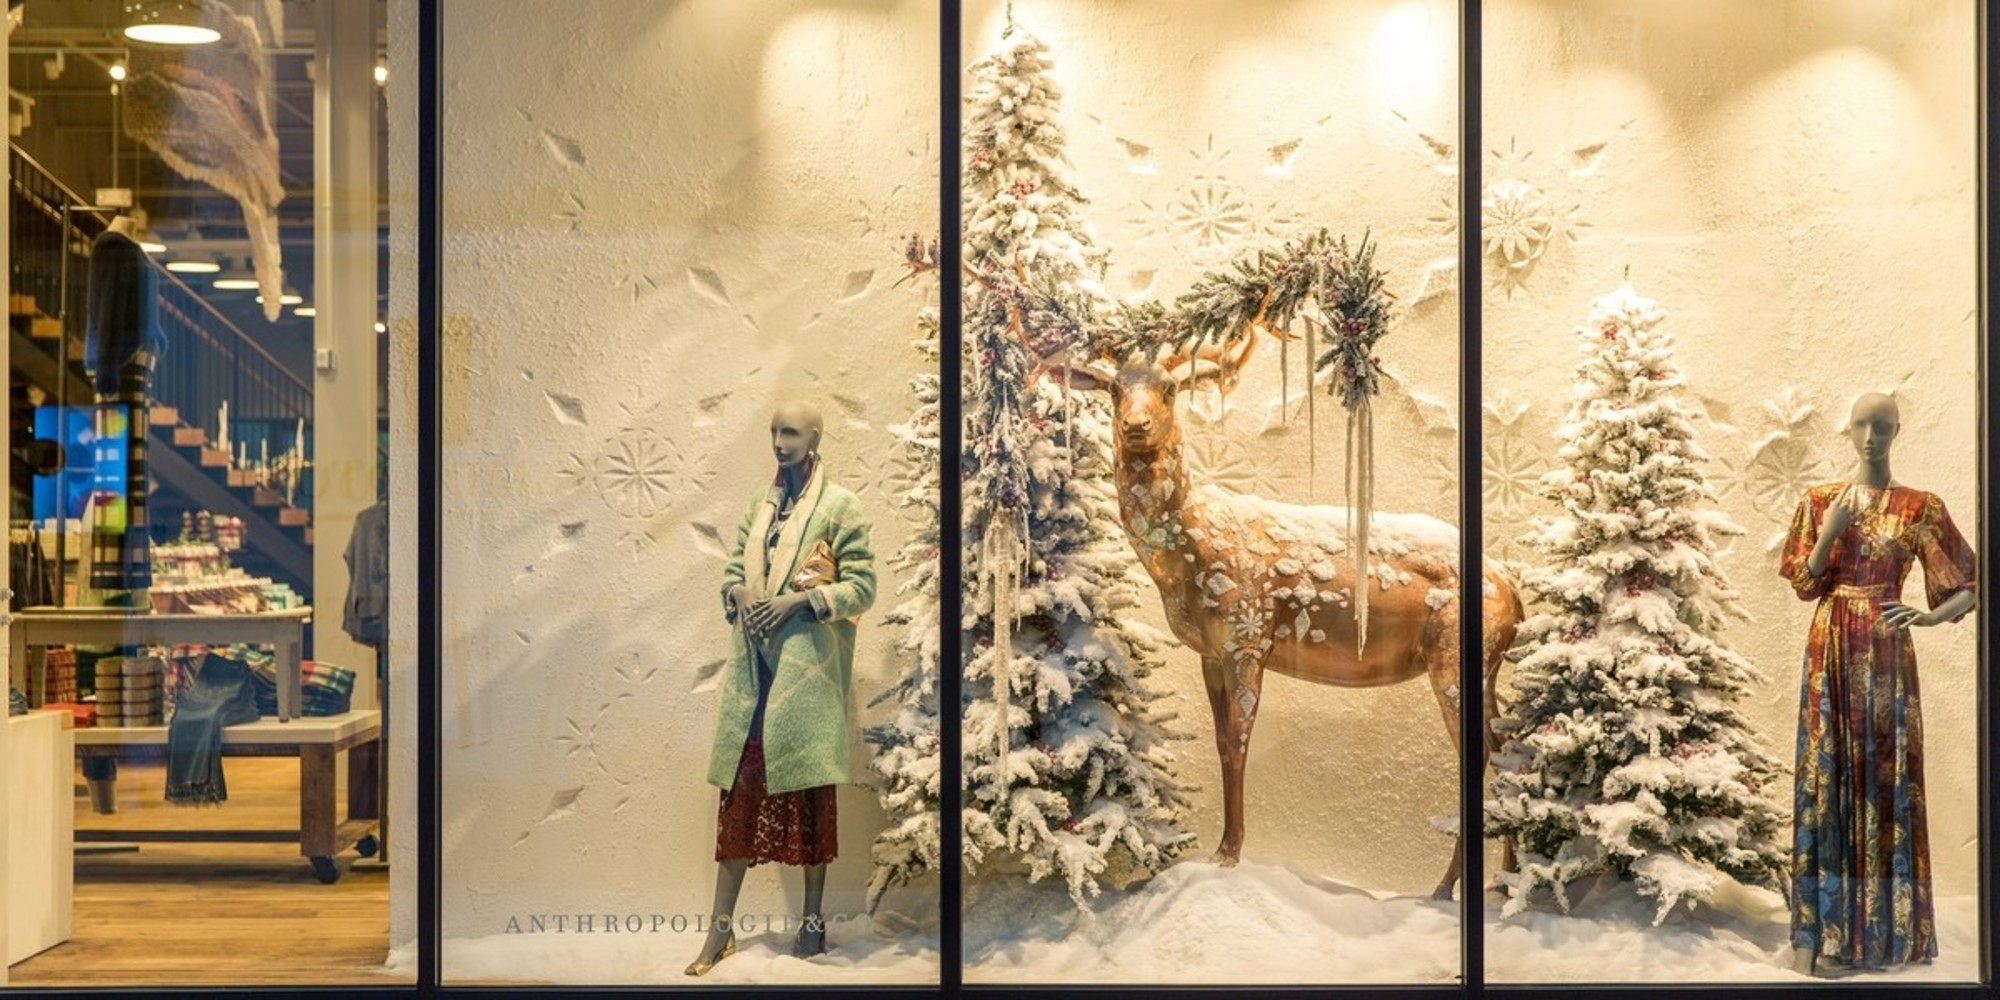 Very pretty scene with a golden reindeer between two snowed firs, and followed by two mannequins in a winter theme for this window display.